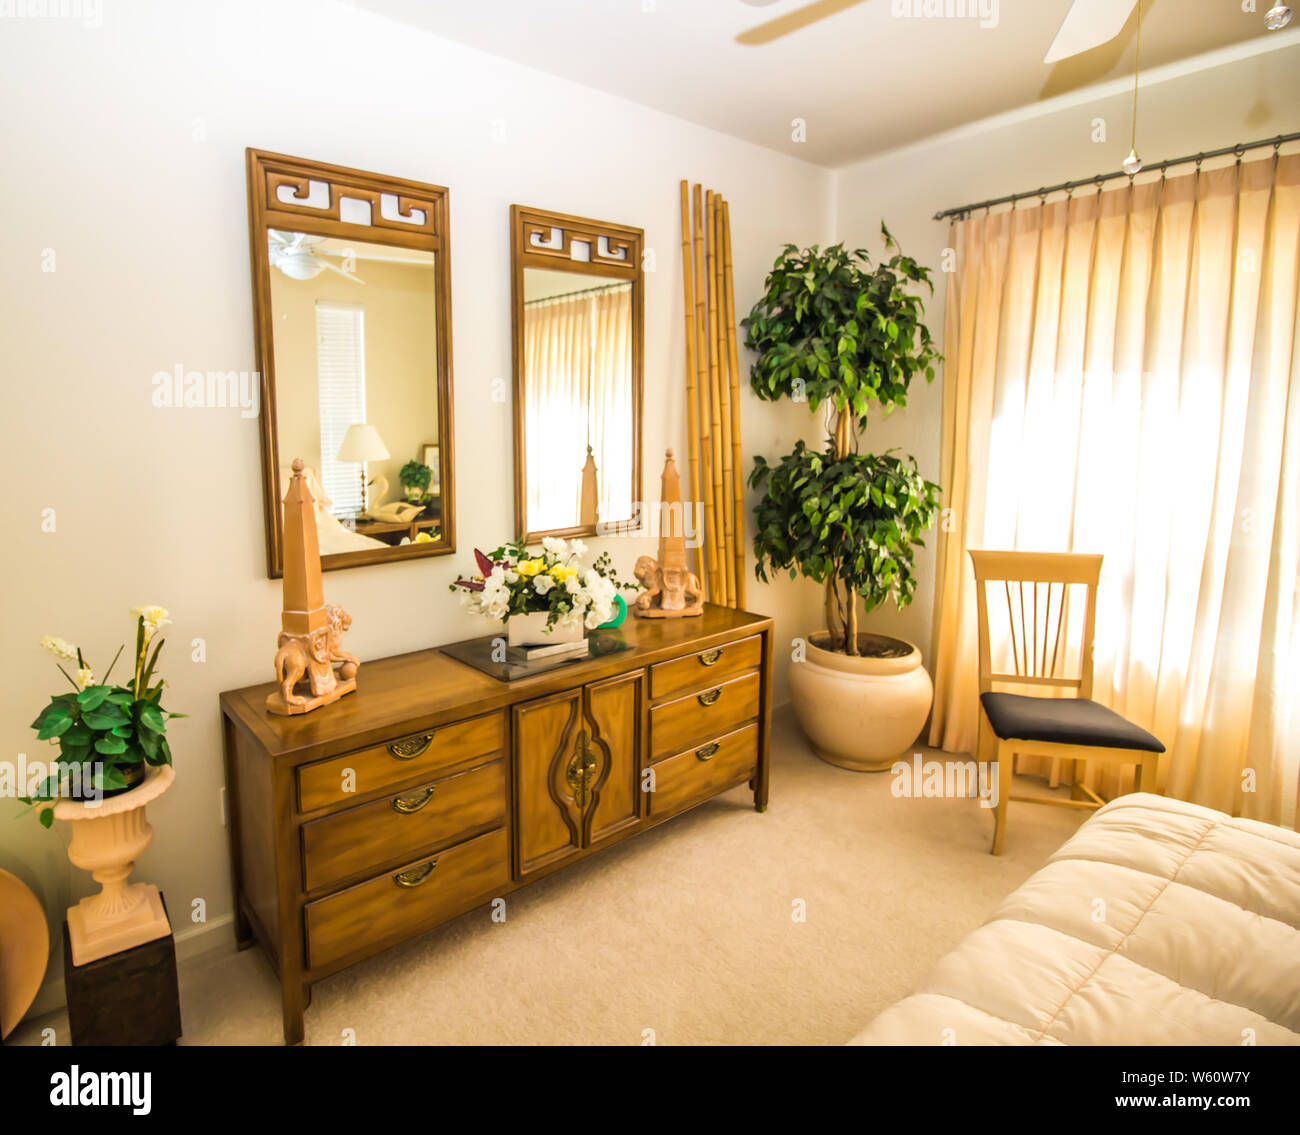 Bedroom With Dresser Mirrors And Bamboo Decorations Stock